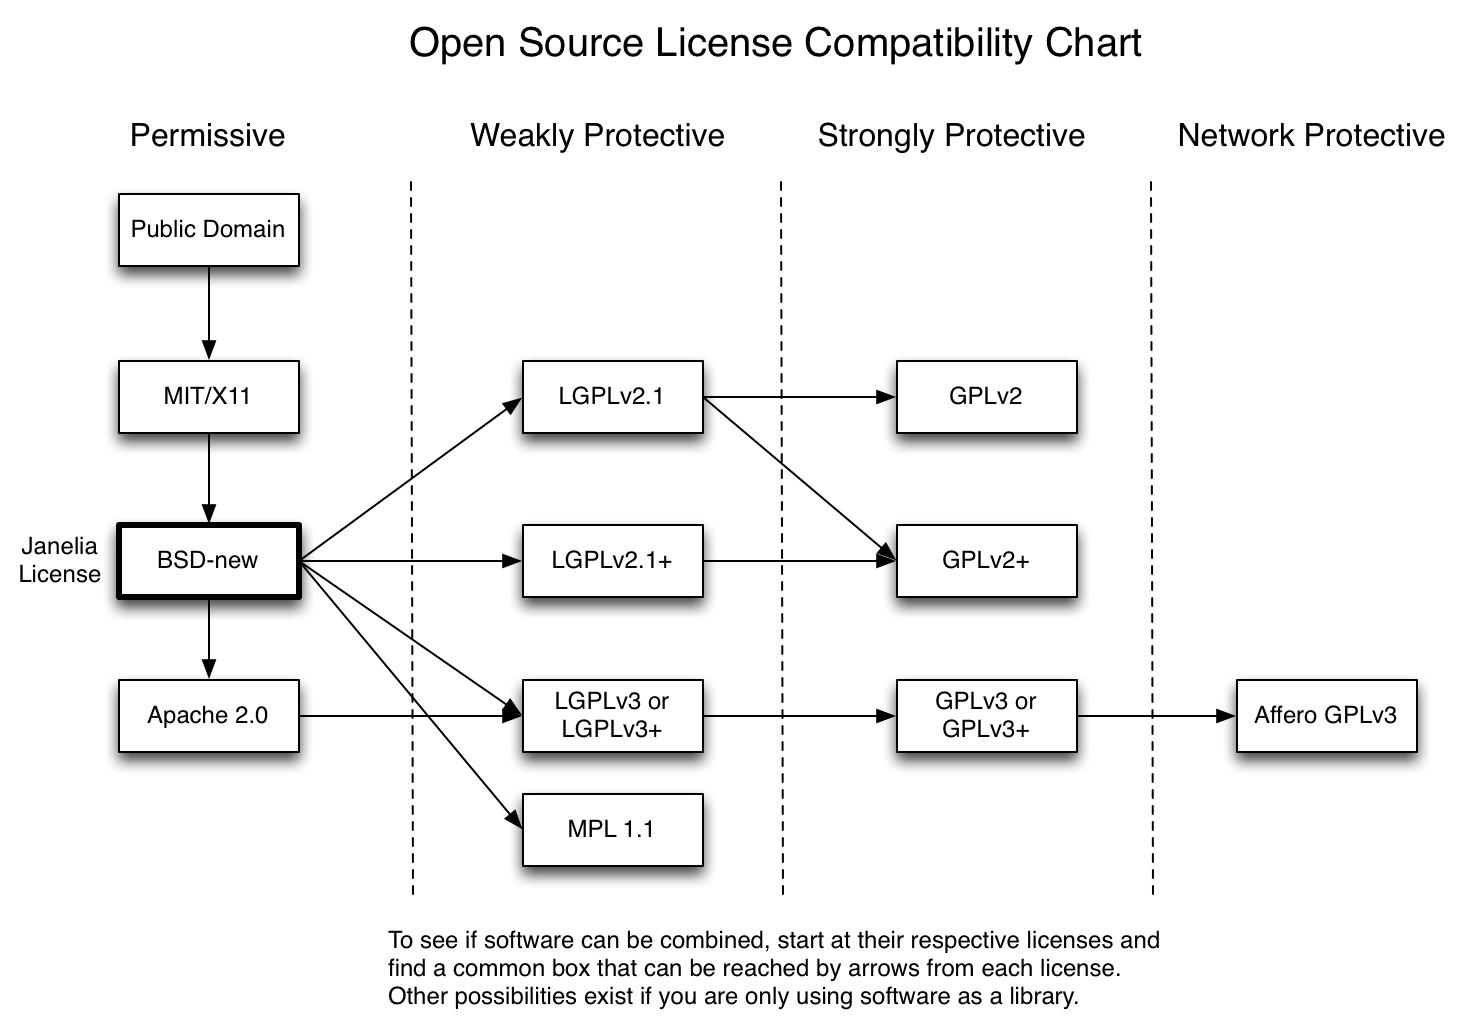 wiring diagram open source nest 3rd generation video licenses and their compatibility